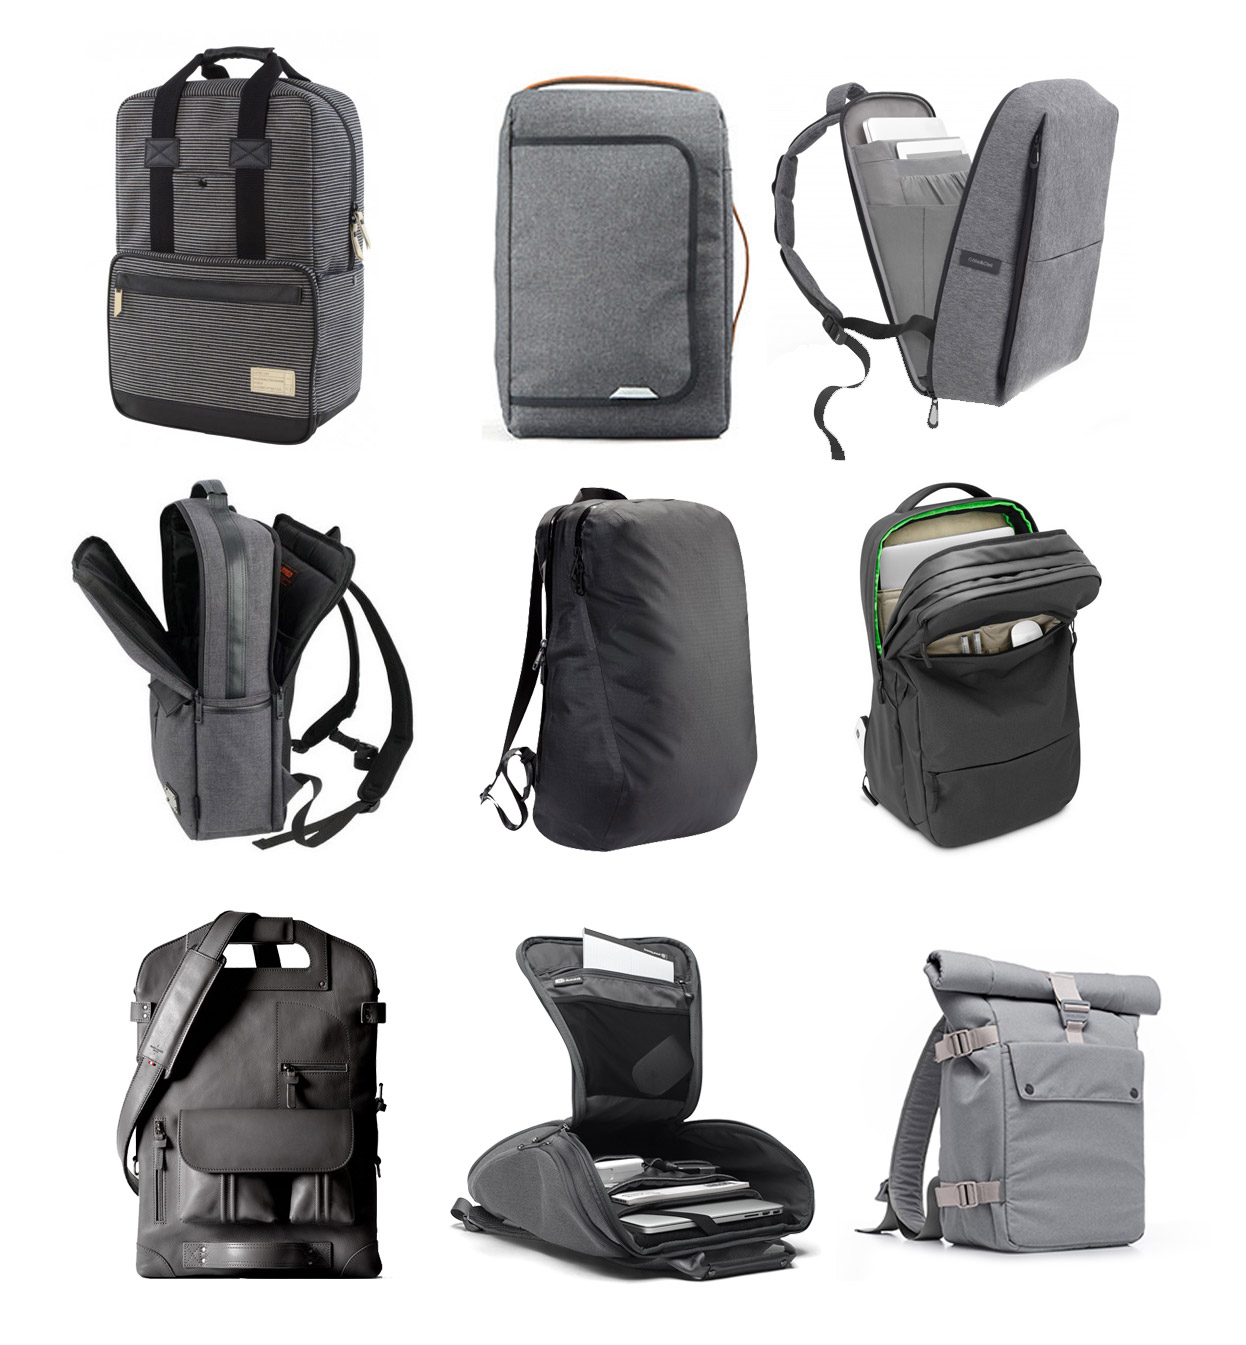 Designer Laptop Backpack kYweZltt